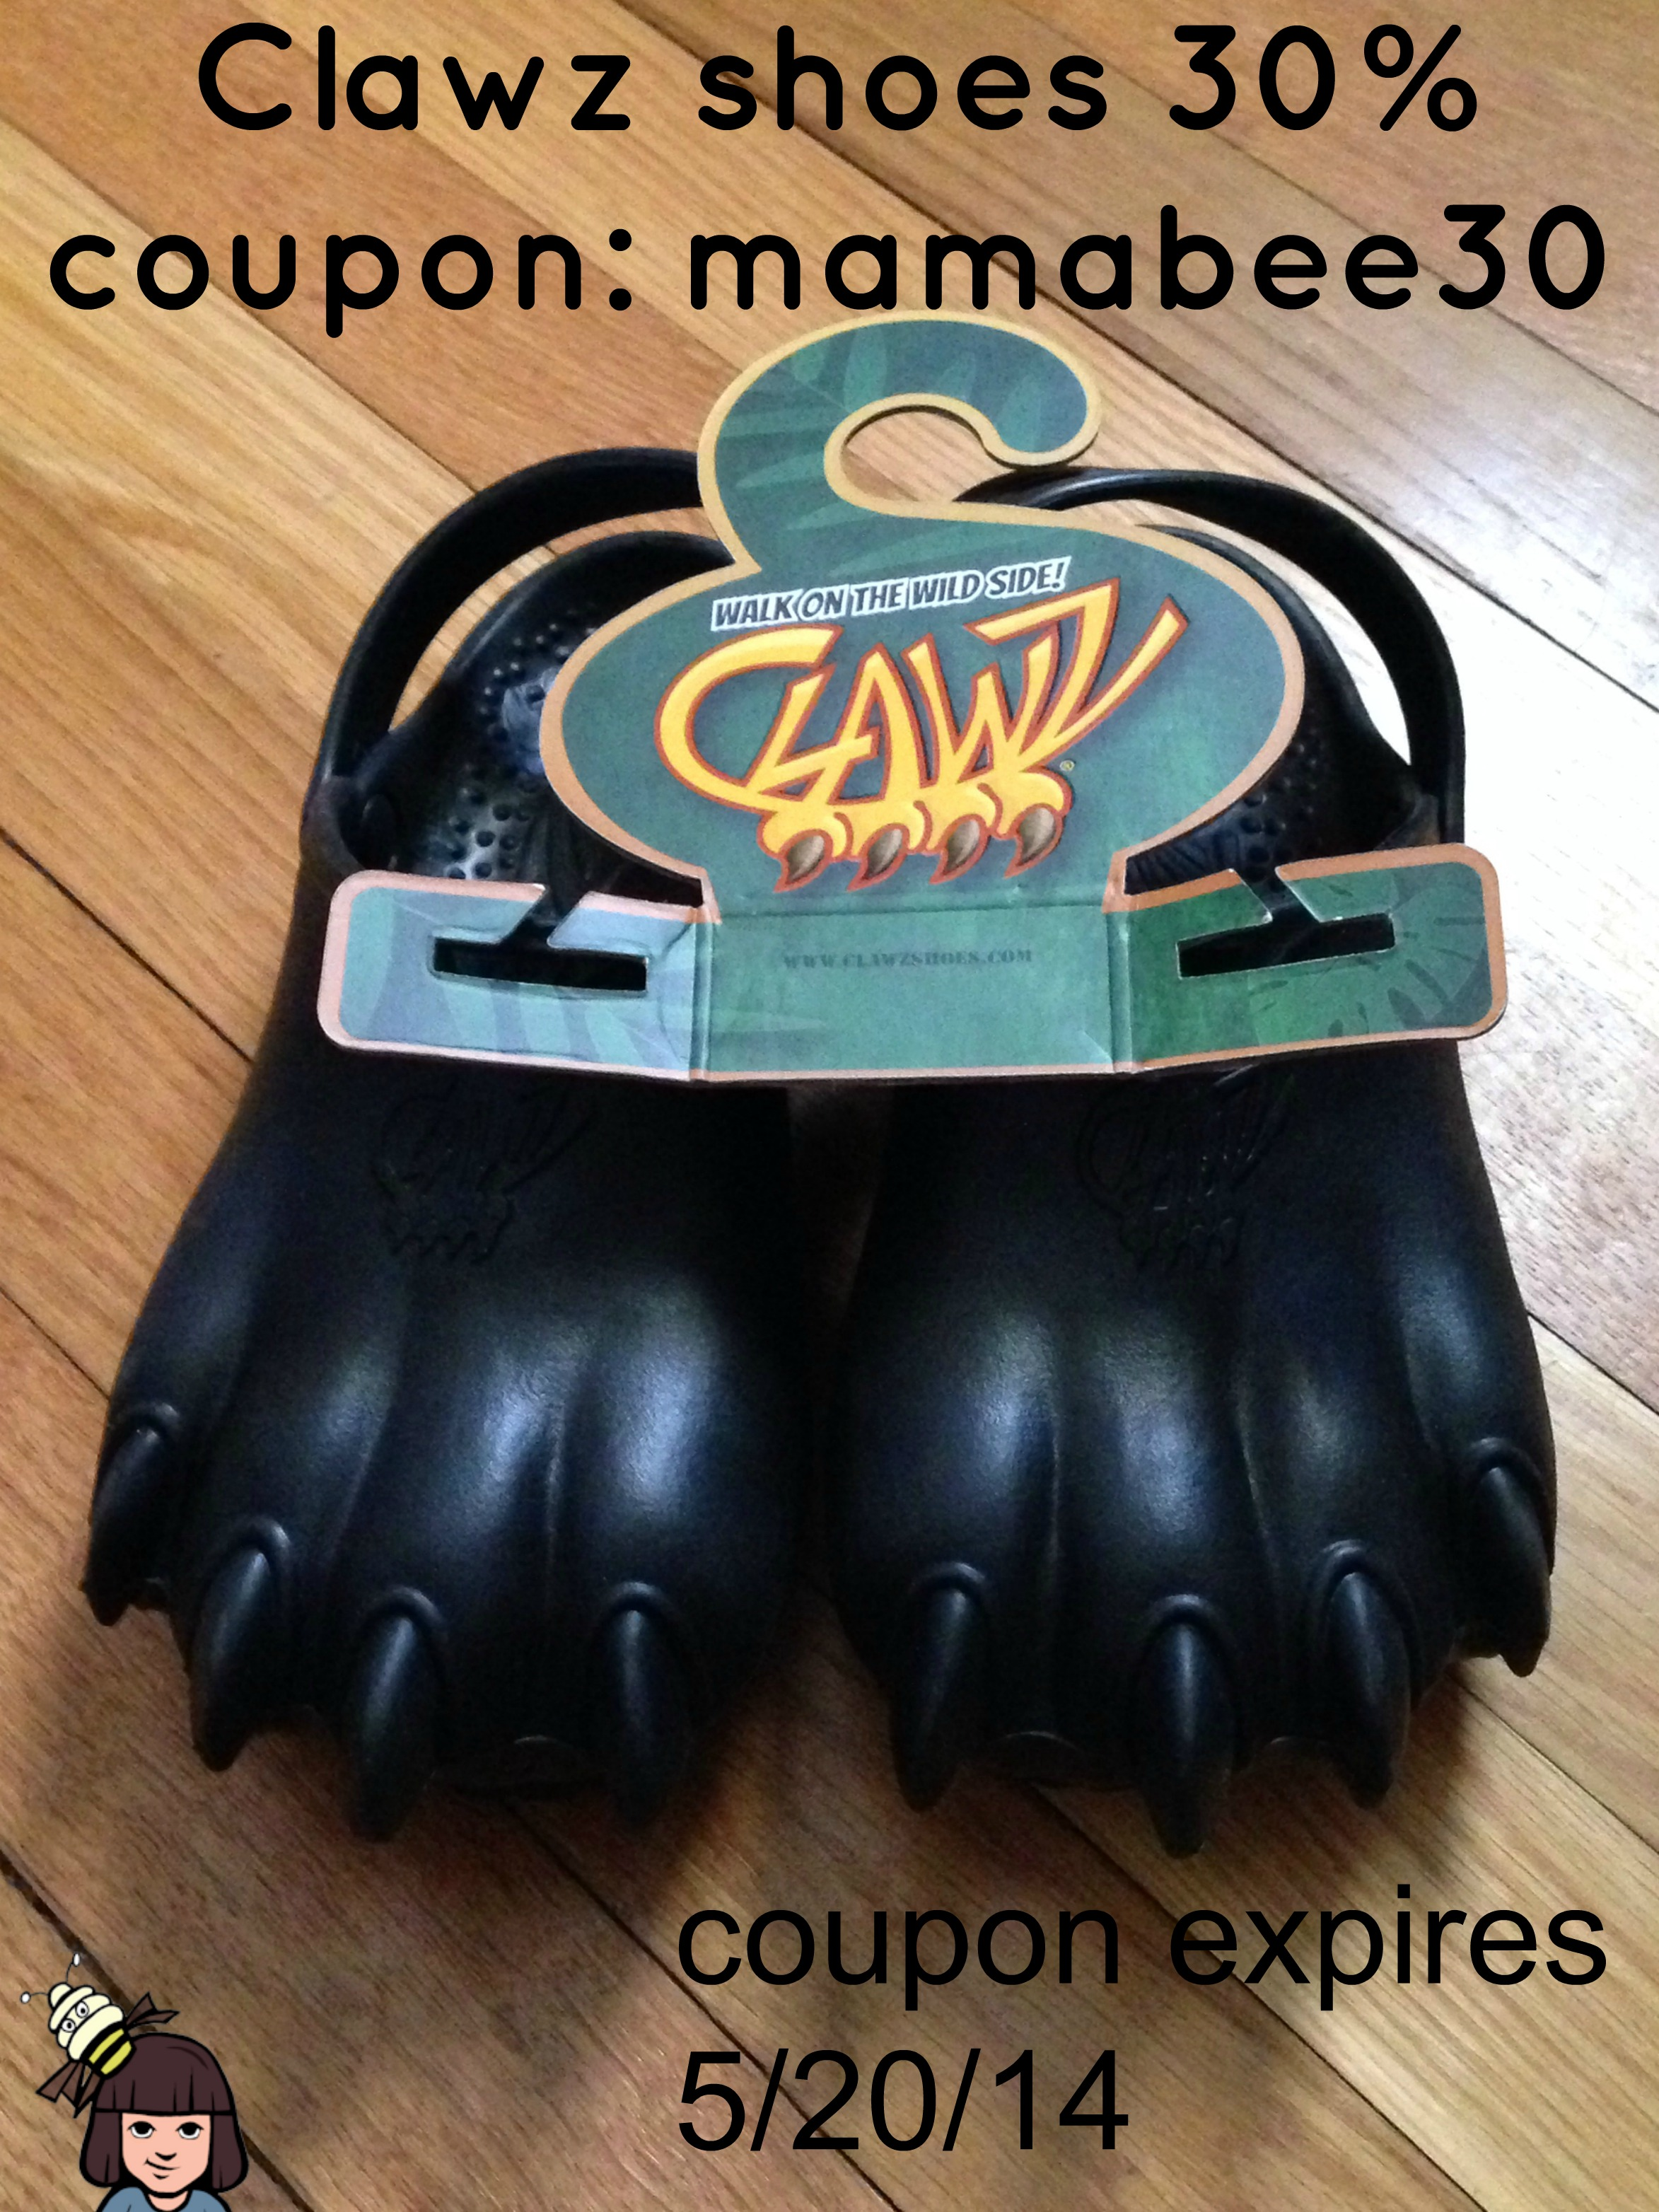 clawz shoes coupon